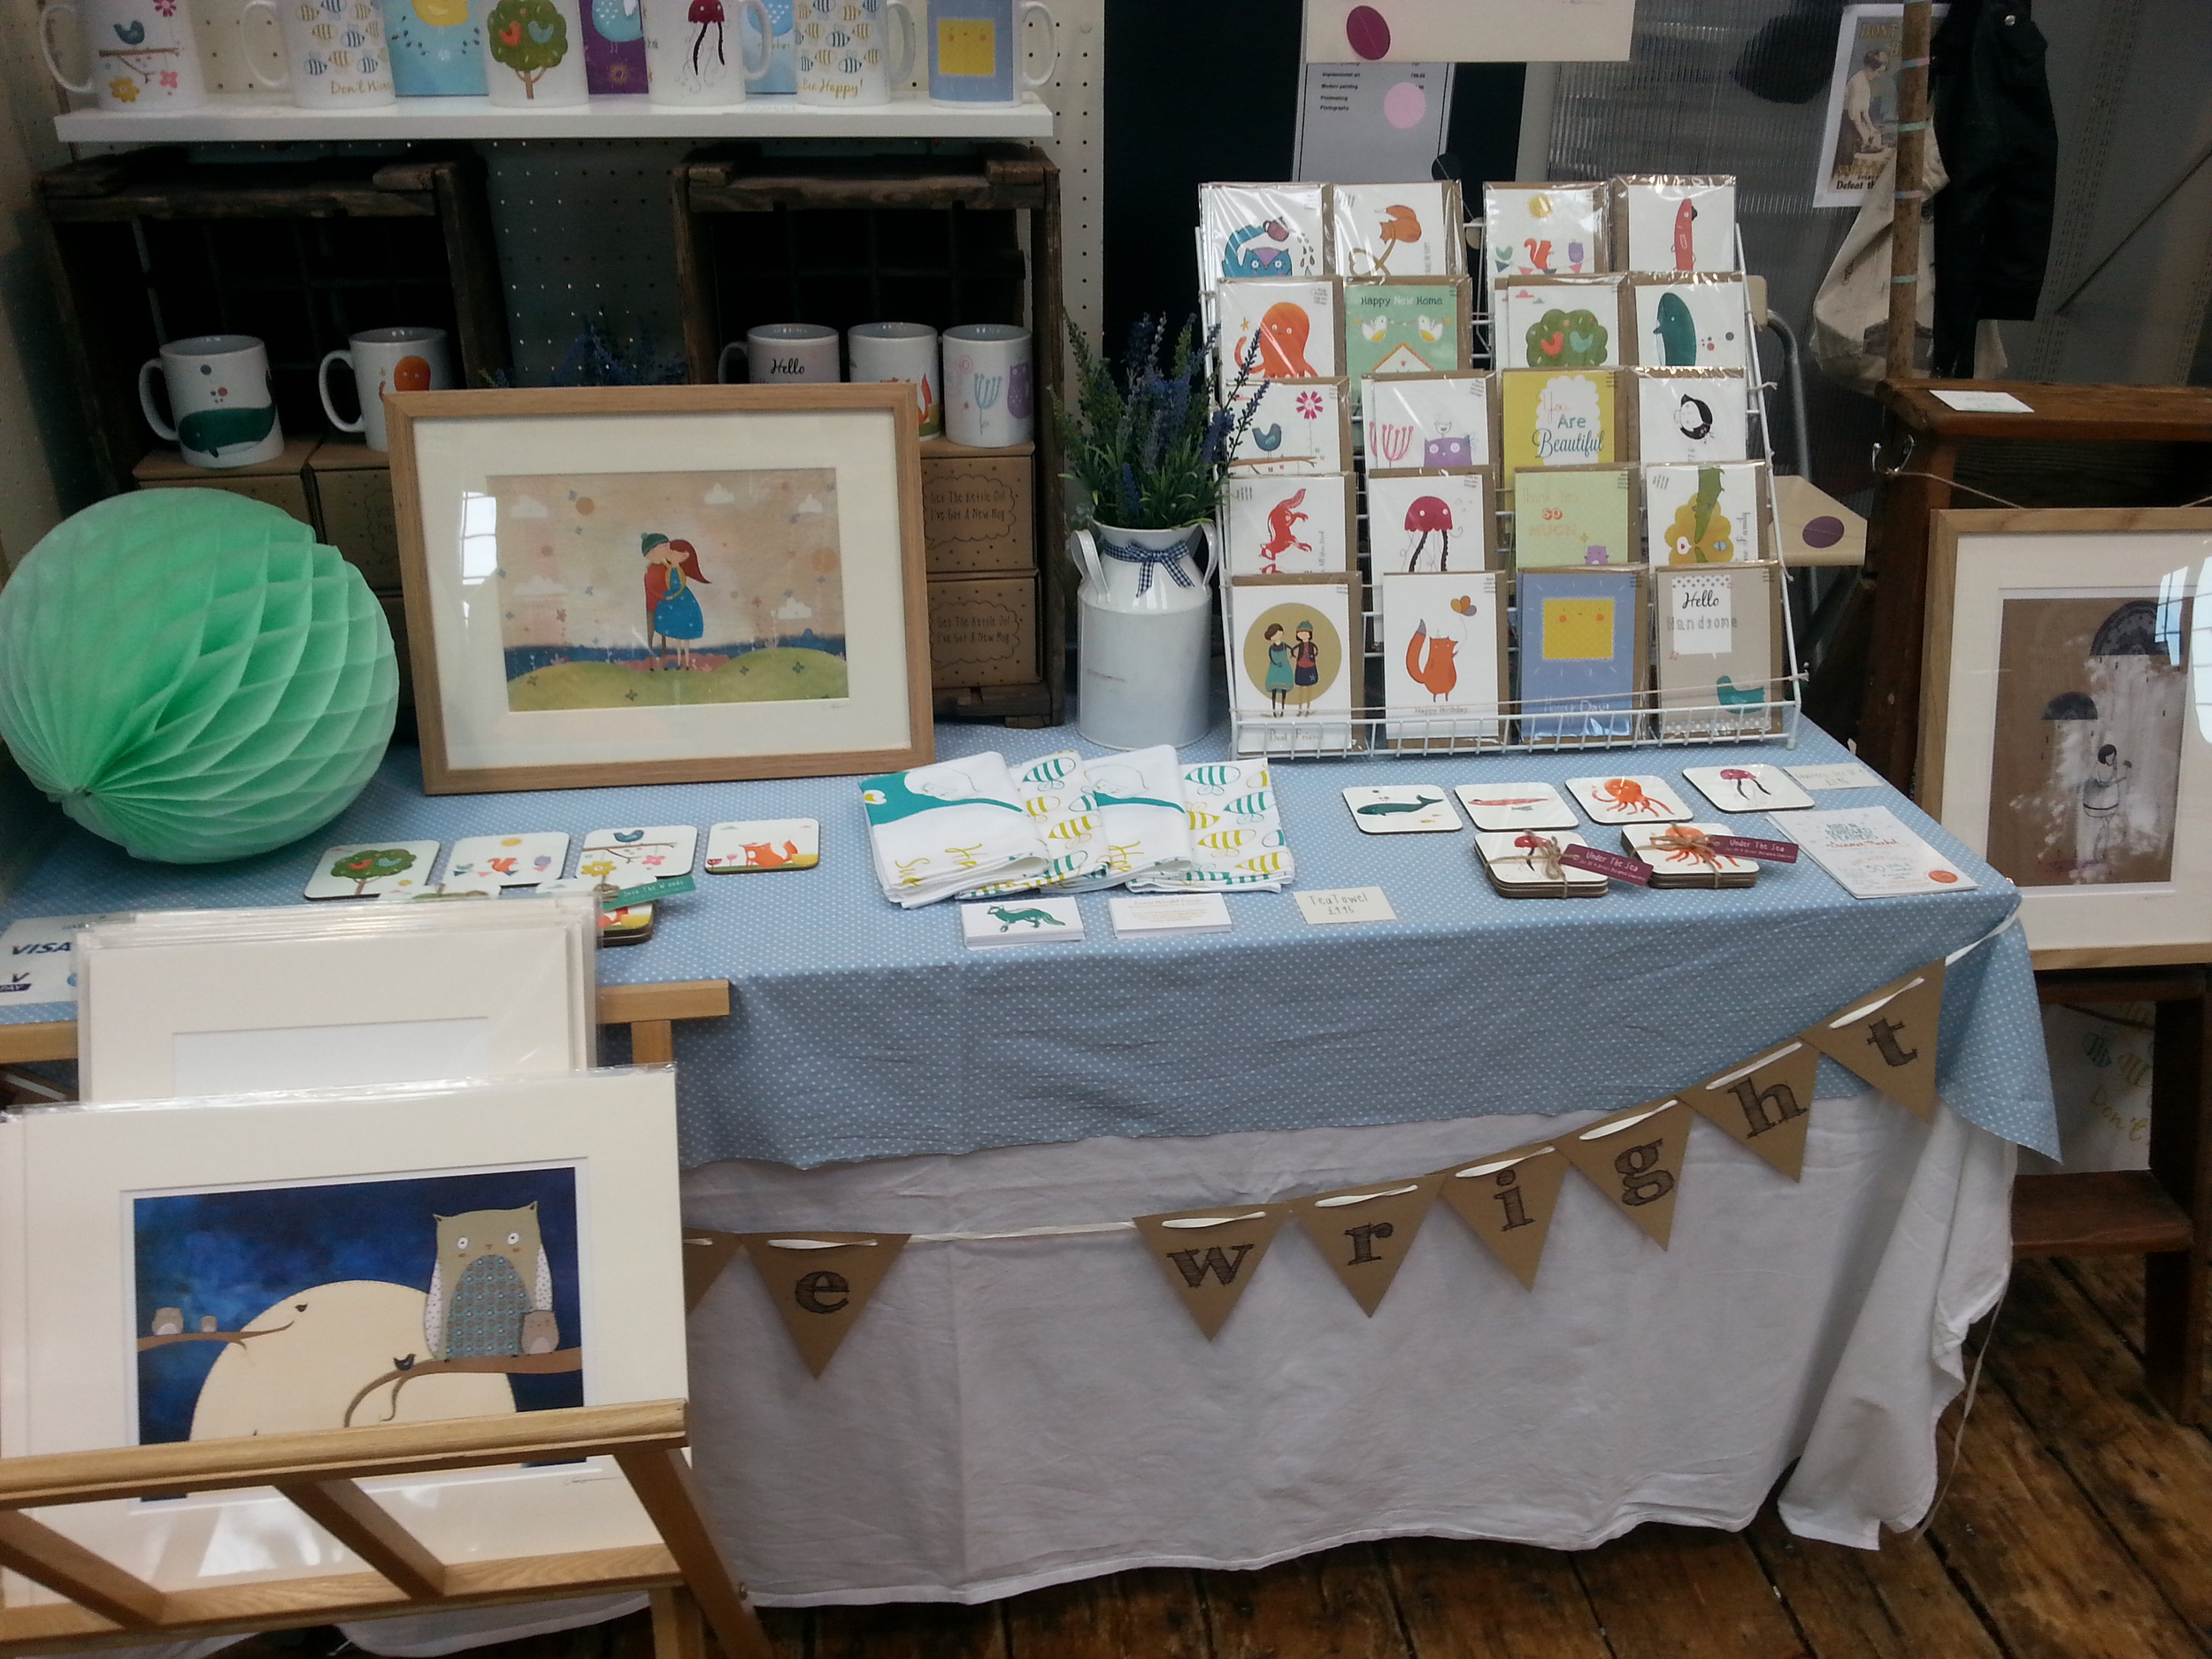 Louise Wright at Fabulous Paces